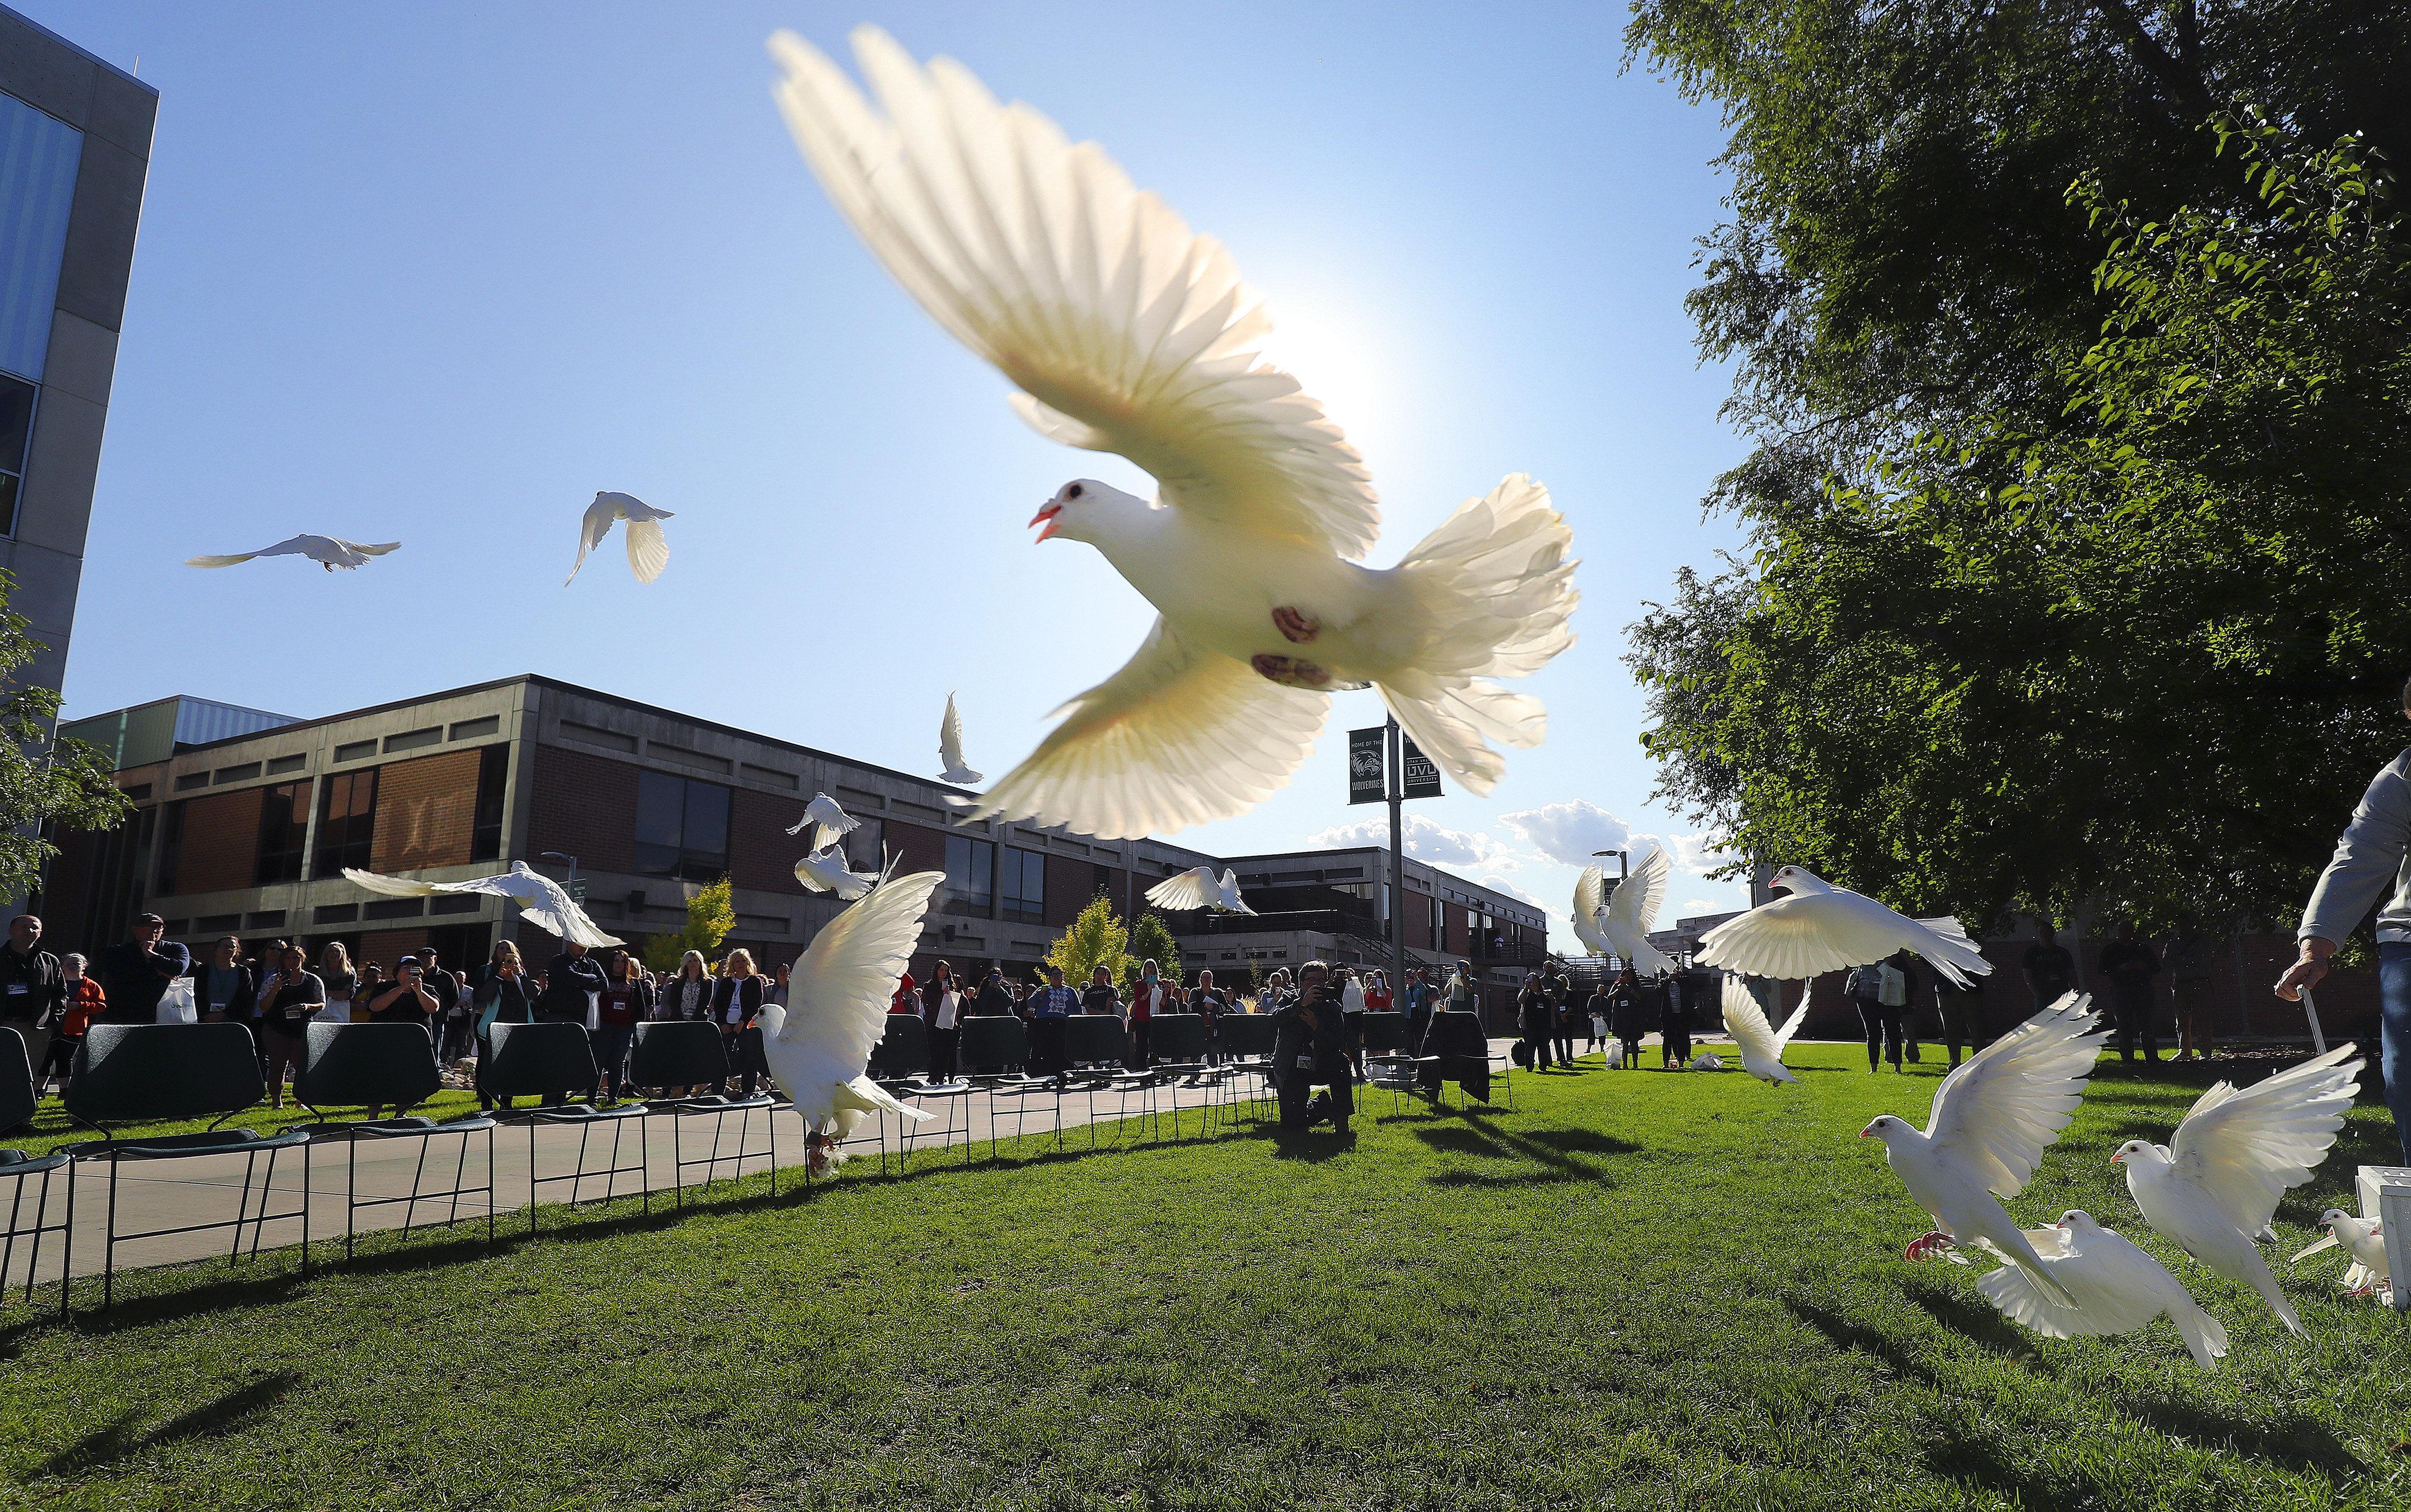 Thirty-three rock doves symbolizing suicide losses atUtah Valley University over the years are released during a suicide prevention conference at the Orem university on Friday, Oct. 4, 2019.